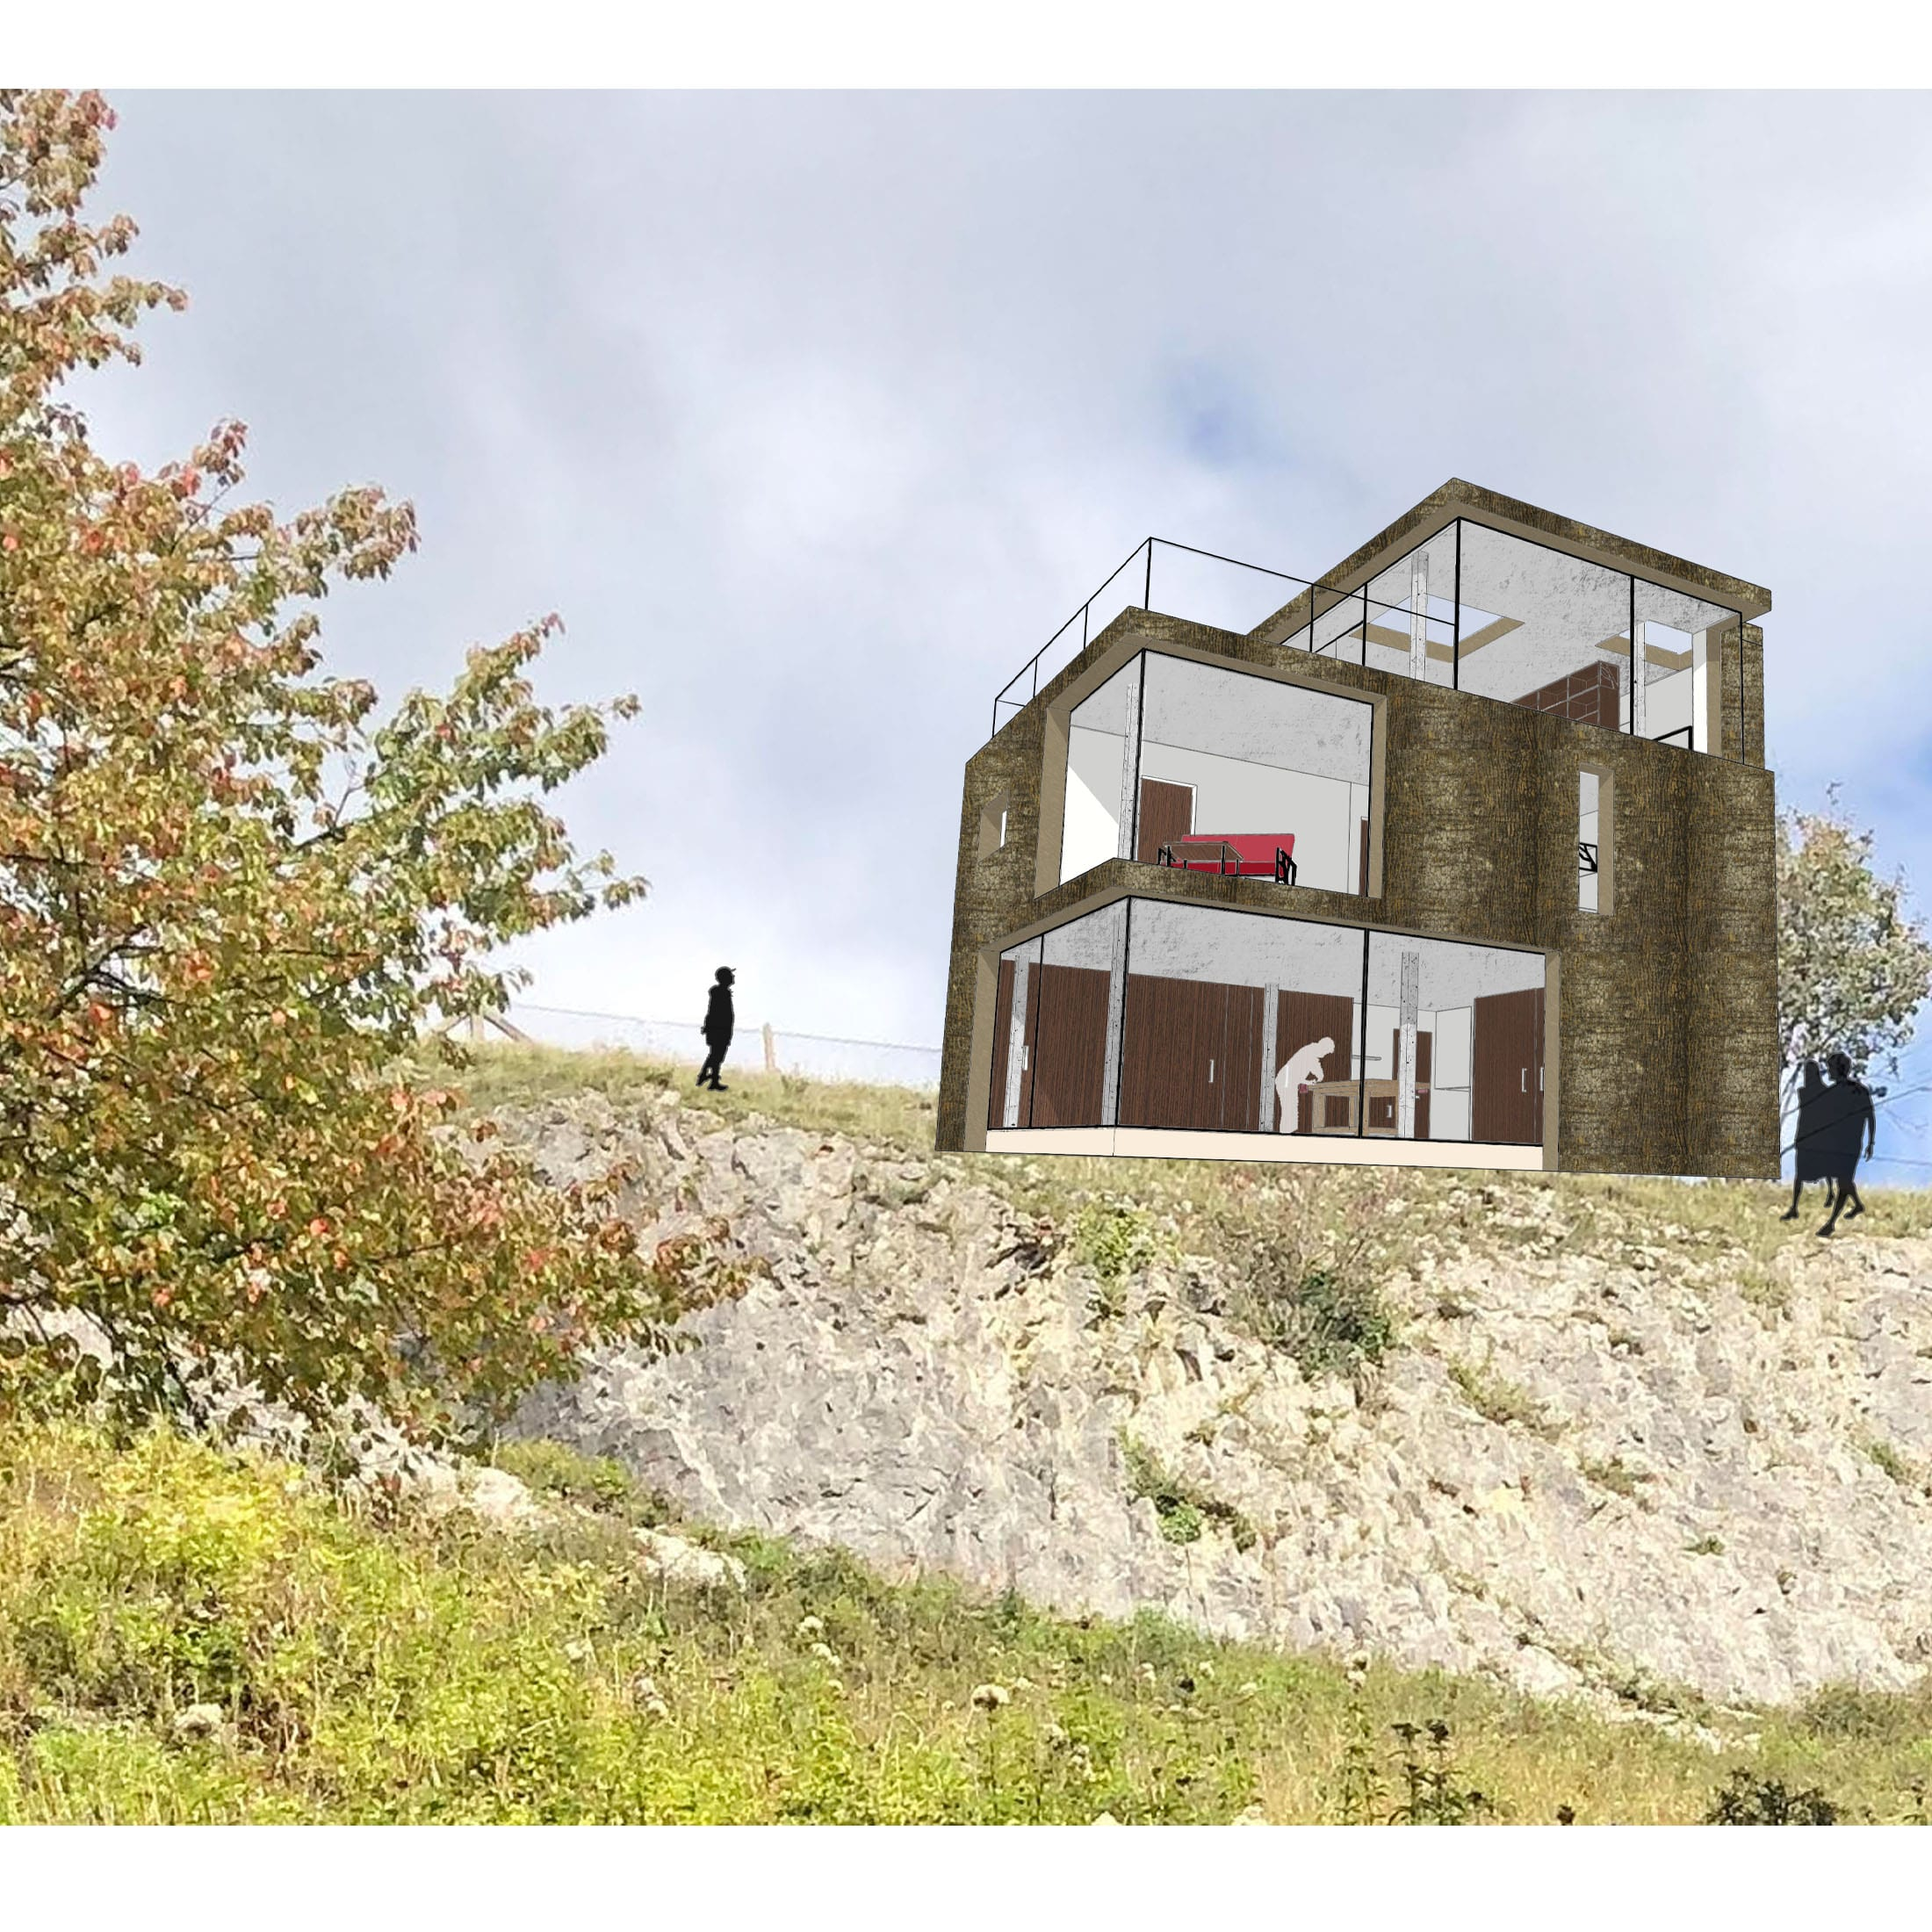 A house sitting at the edge of a cliff face.